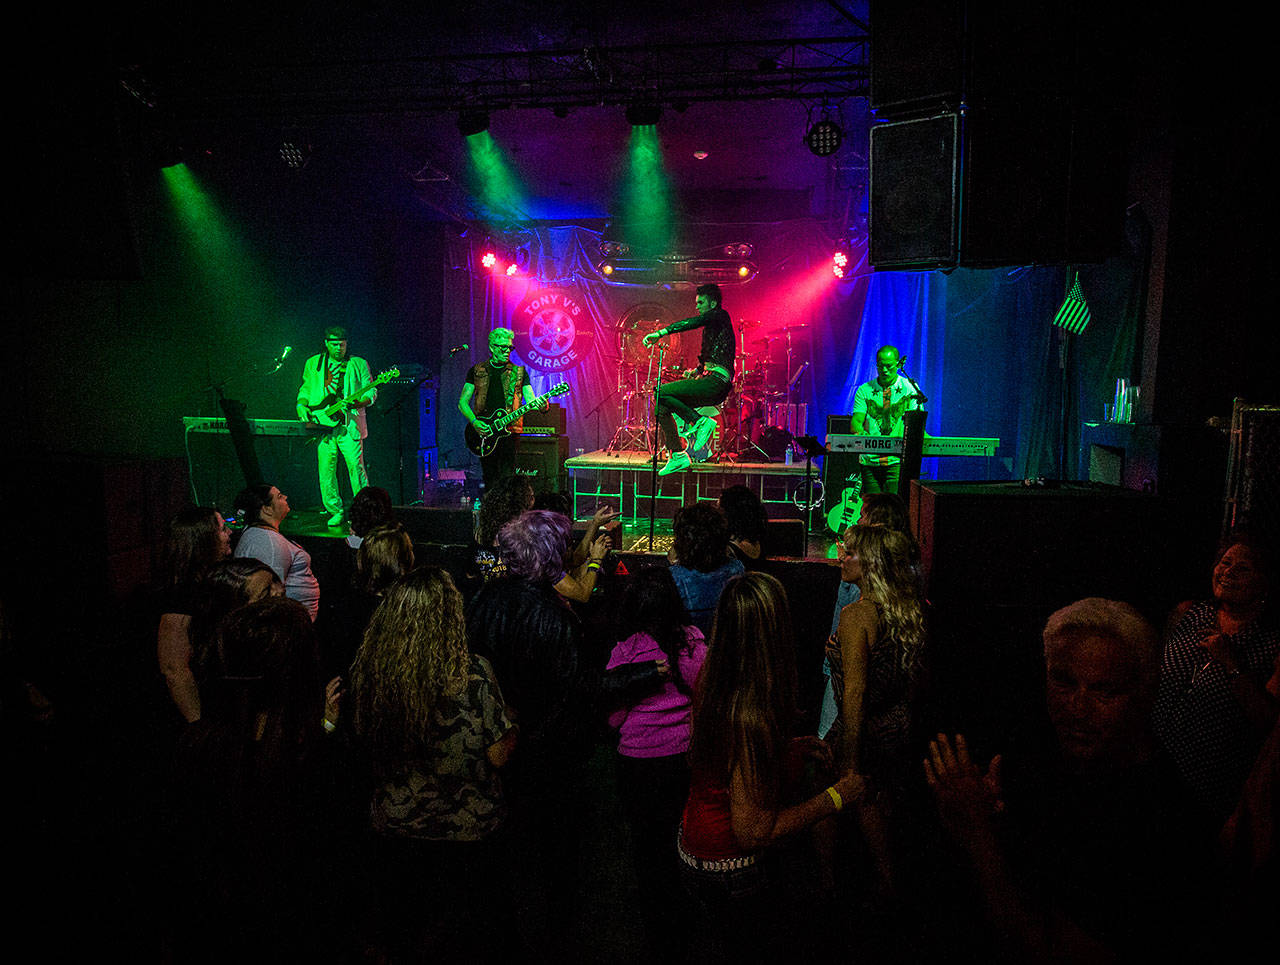 Nite Wave will perform new wave favorites from the '80s in a March 20 show at the Historic Everett Theatre. (Olivia Vanni / Herald file)